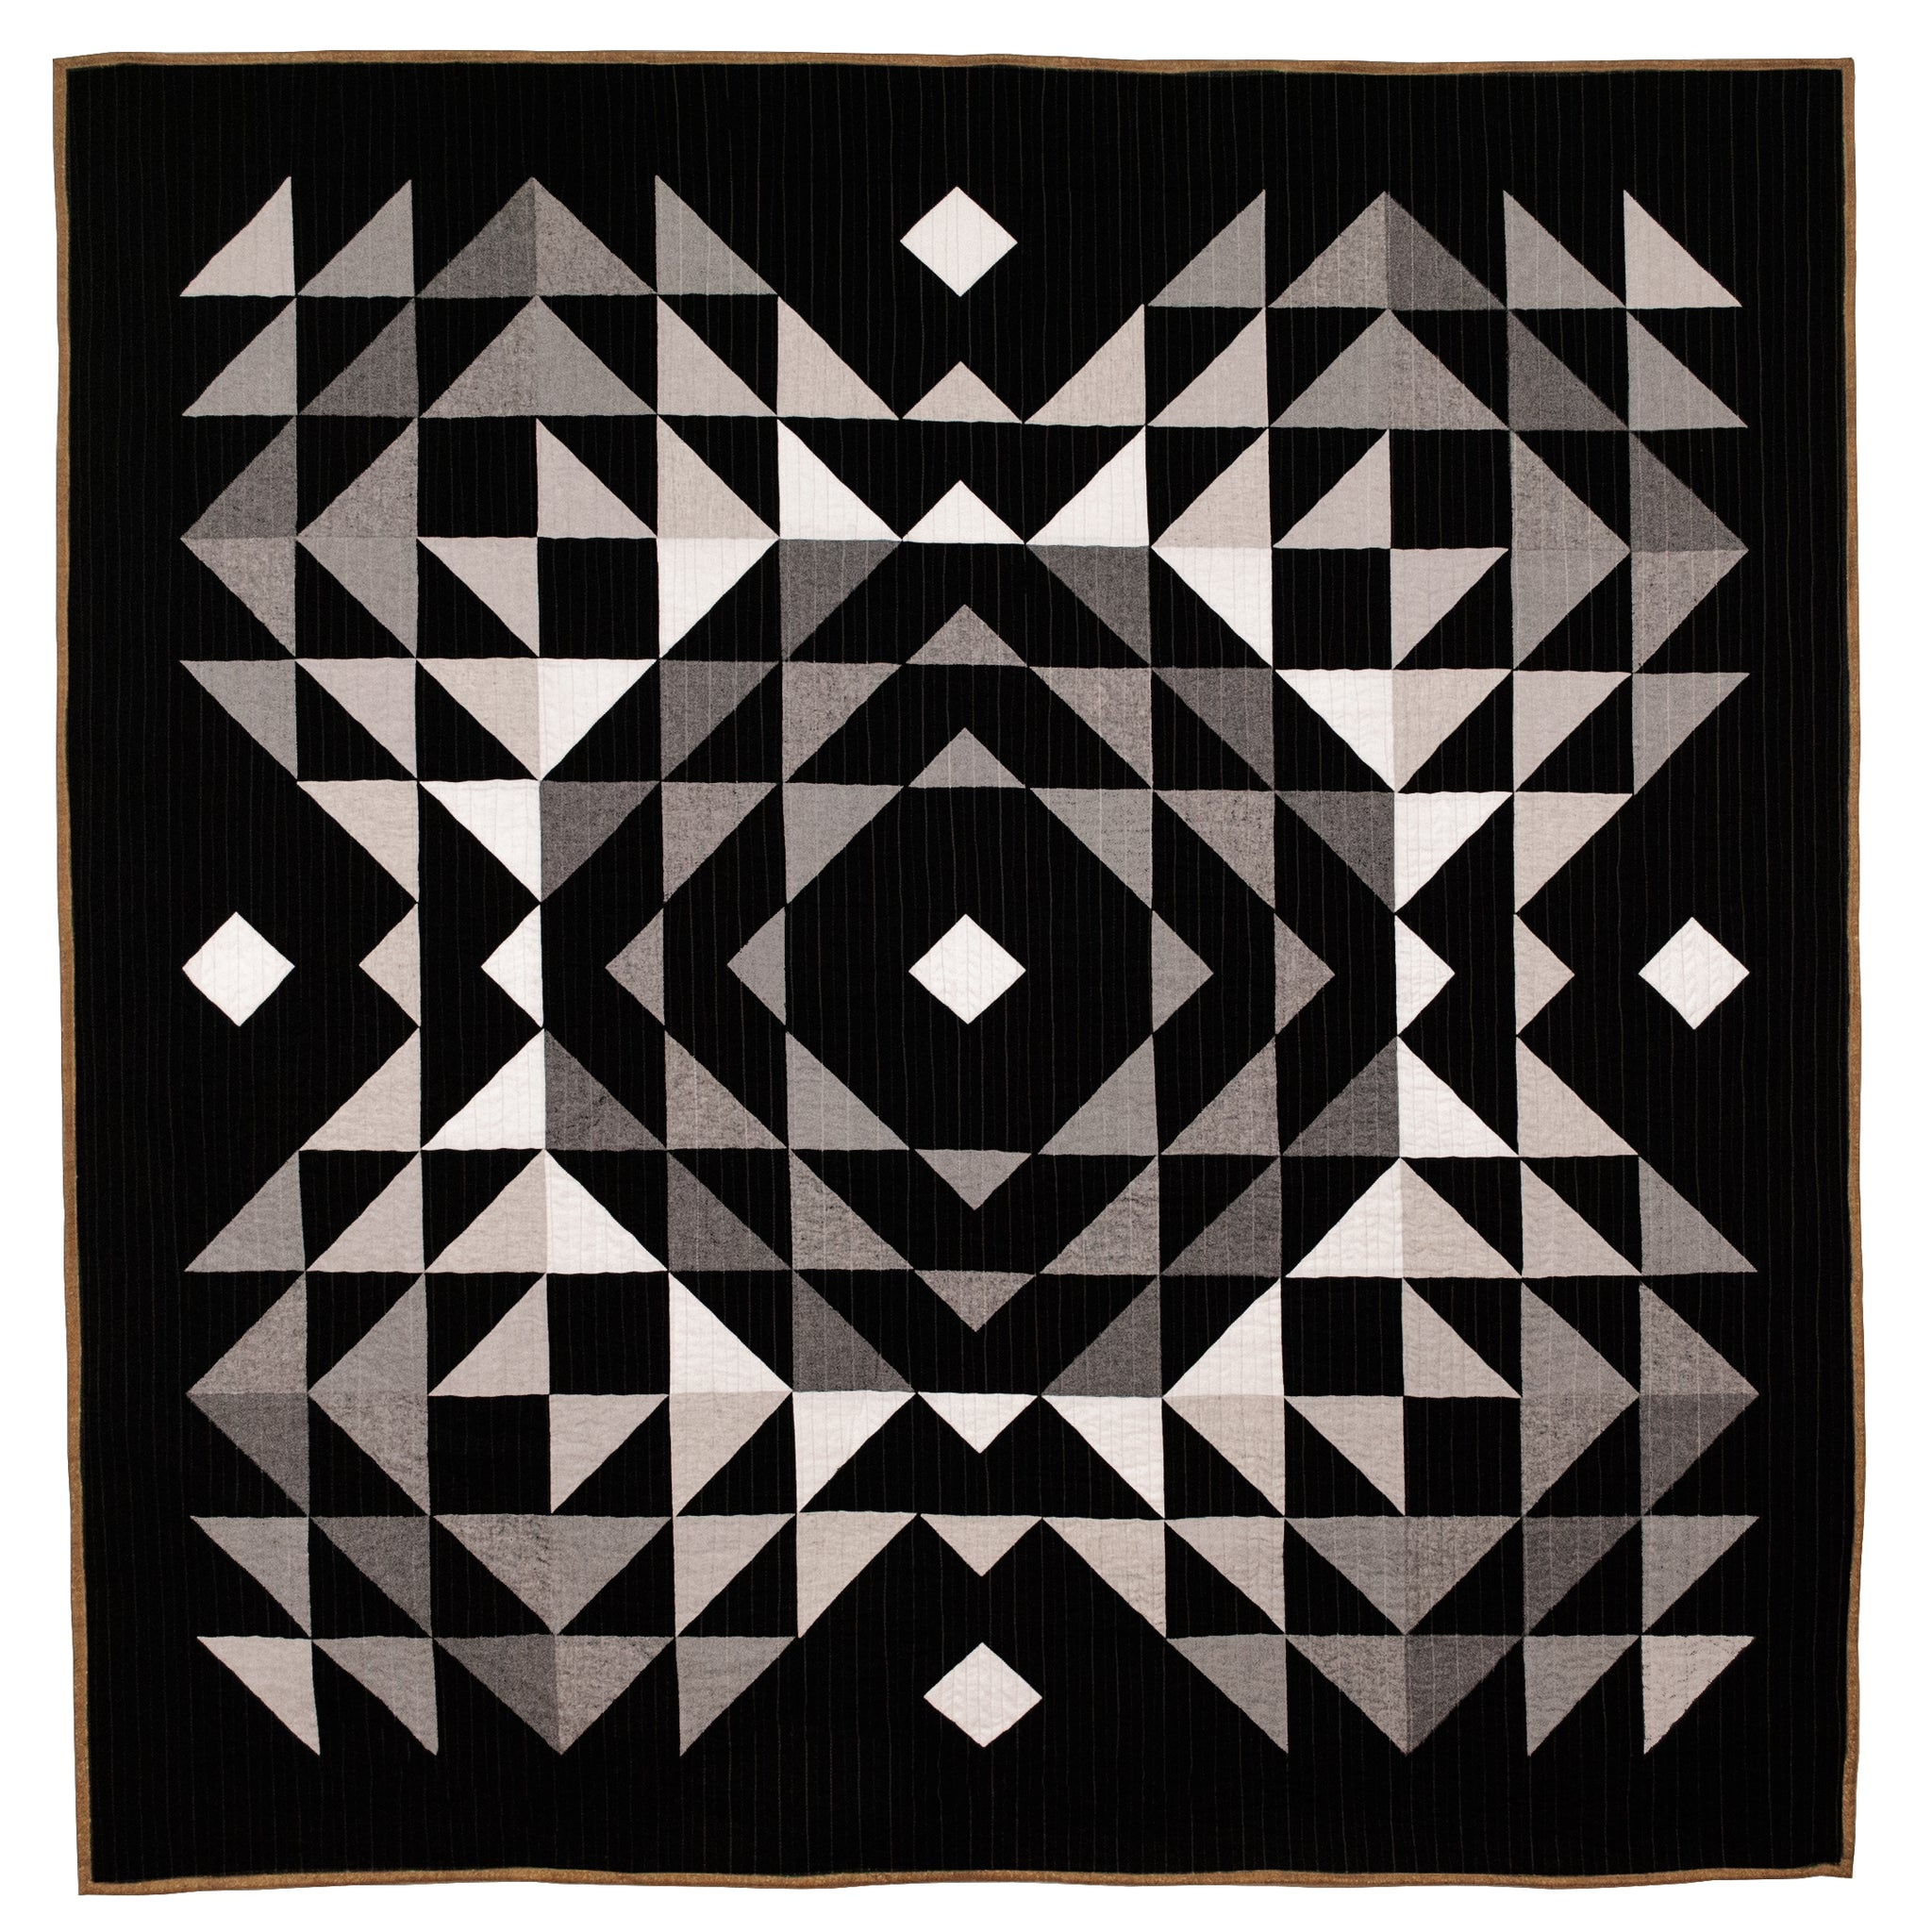 Totality Quilt – Paper Pattern